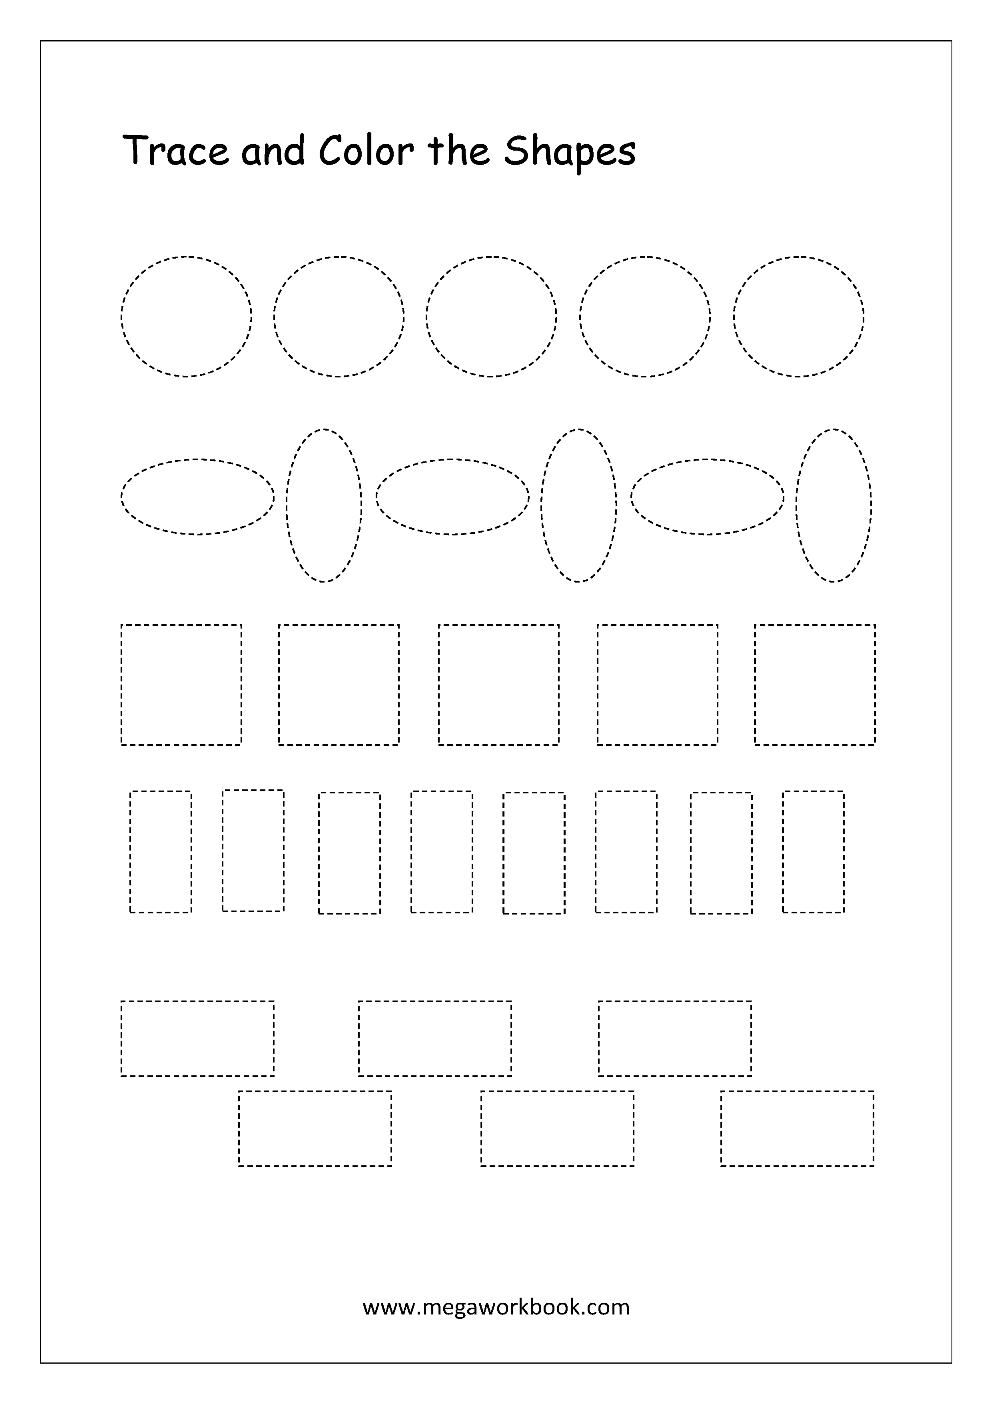 - Free Printable Shapes Worksheets - Tracing Simple Shapes - Pre Writing  Skills Worksheets For Preschool/Kindergarten - 2D Shapes (Circle, Square,  Triangle, Rectangle, Semicircle Etc.) - MegaWorkbook